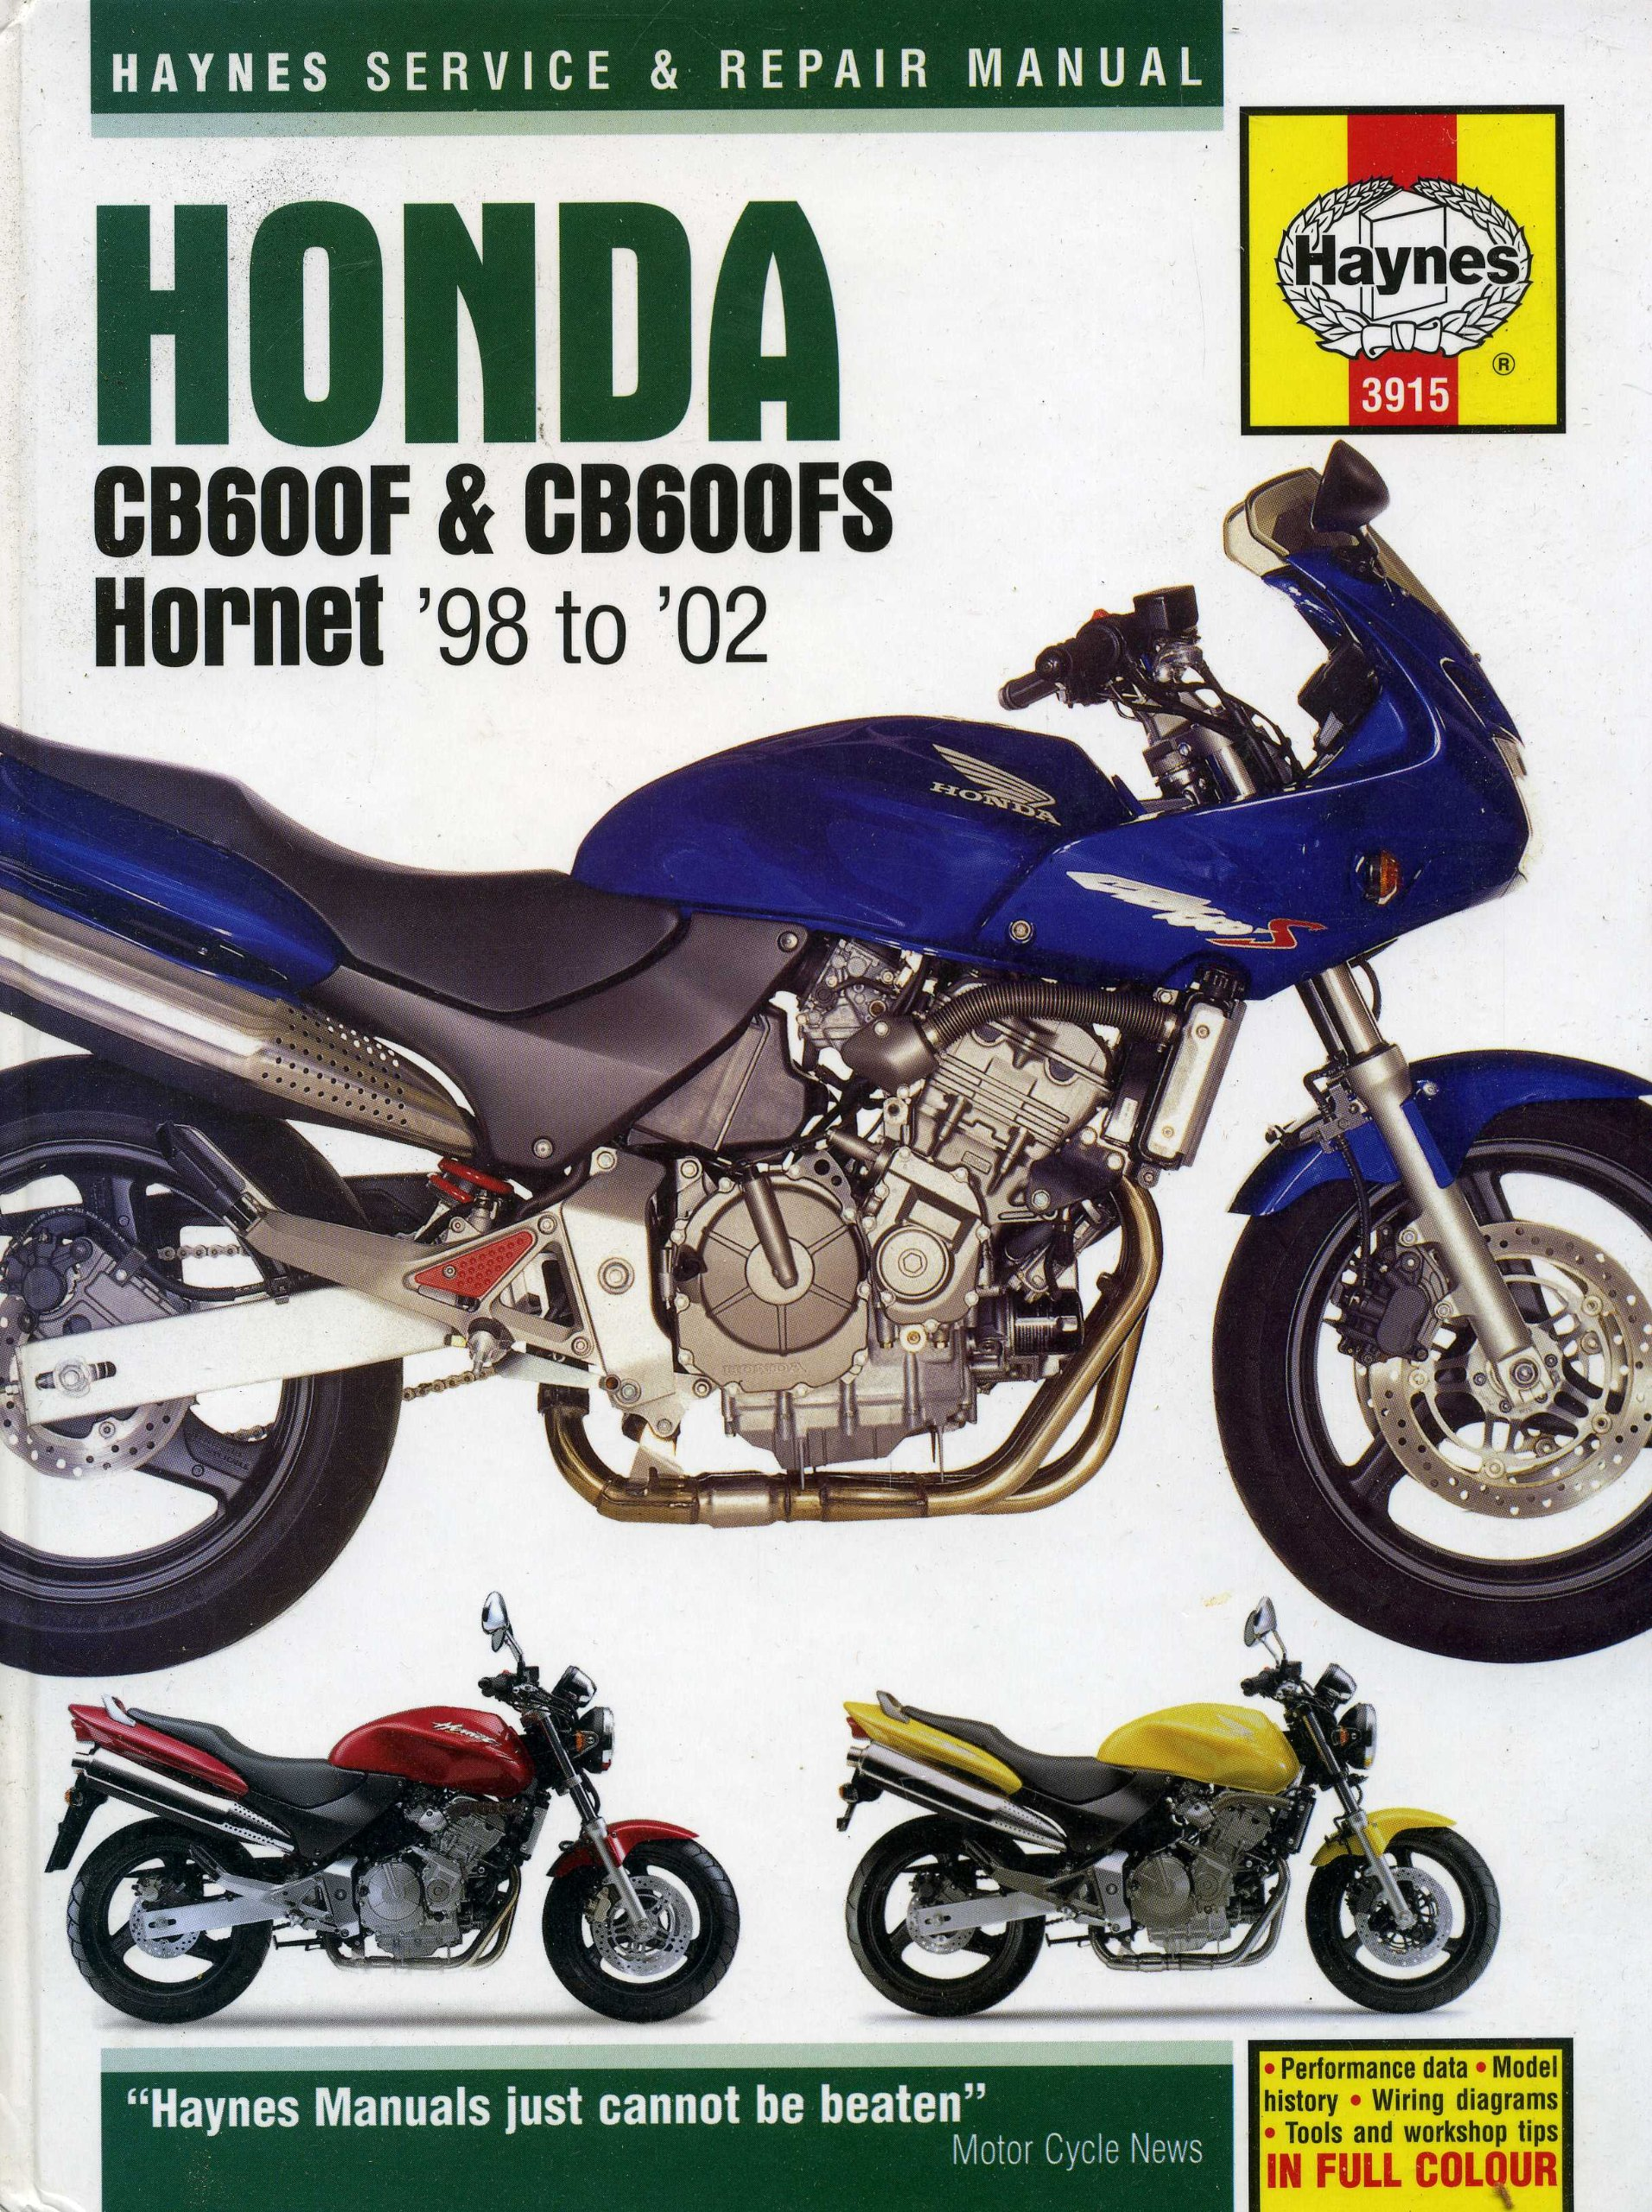 Honda CB600F and CB600FS Hornet Service and Repair Manual: 1998 to 2002  (Haynes Service and Repair Manuals 3915): Amazon.co.uk: Phil Mather:  9781859609156: ...